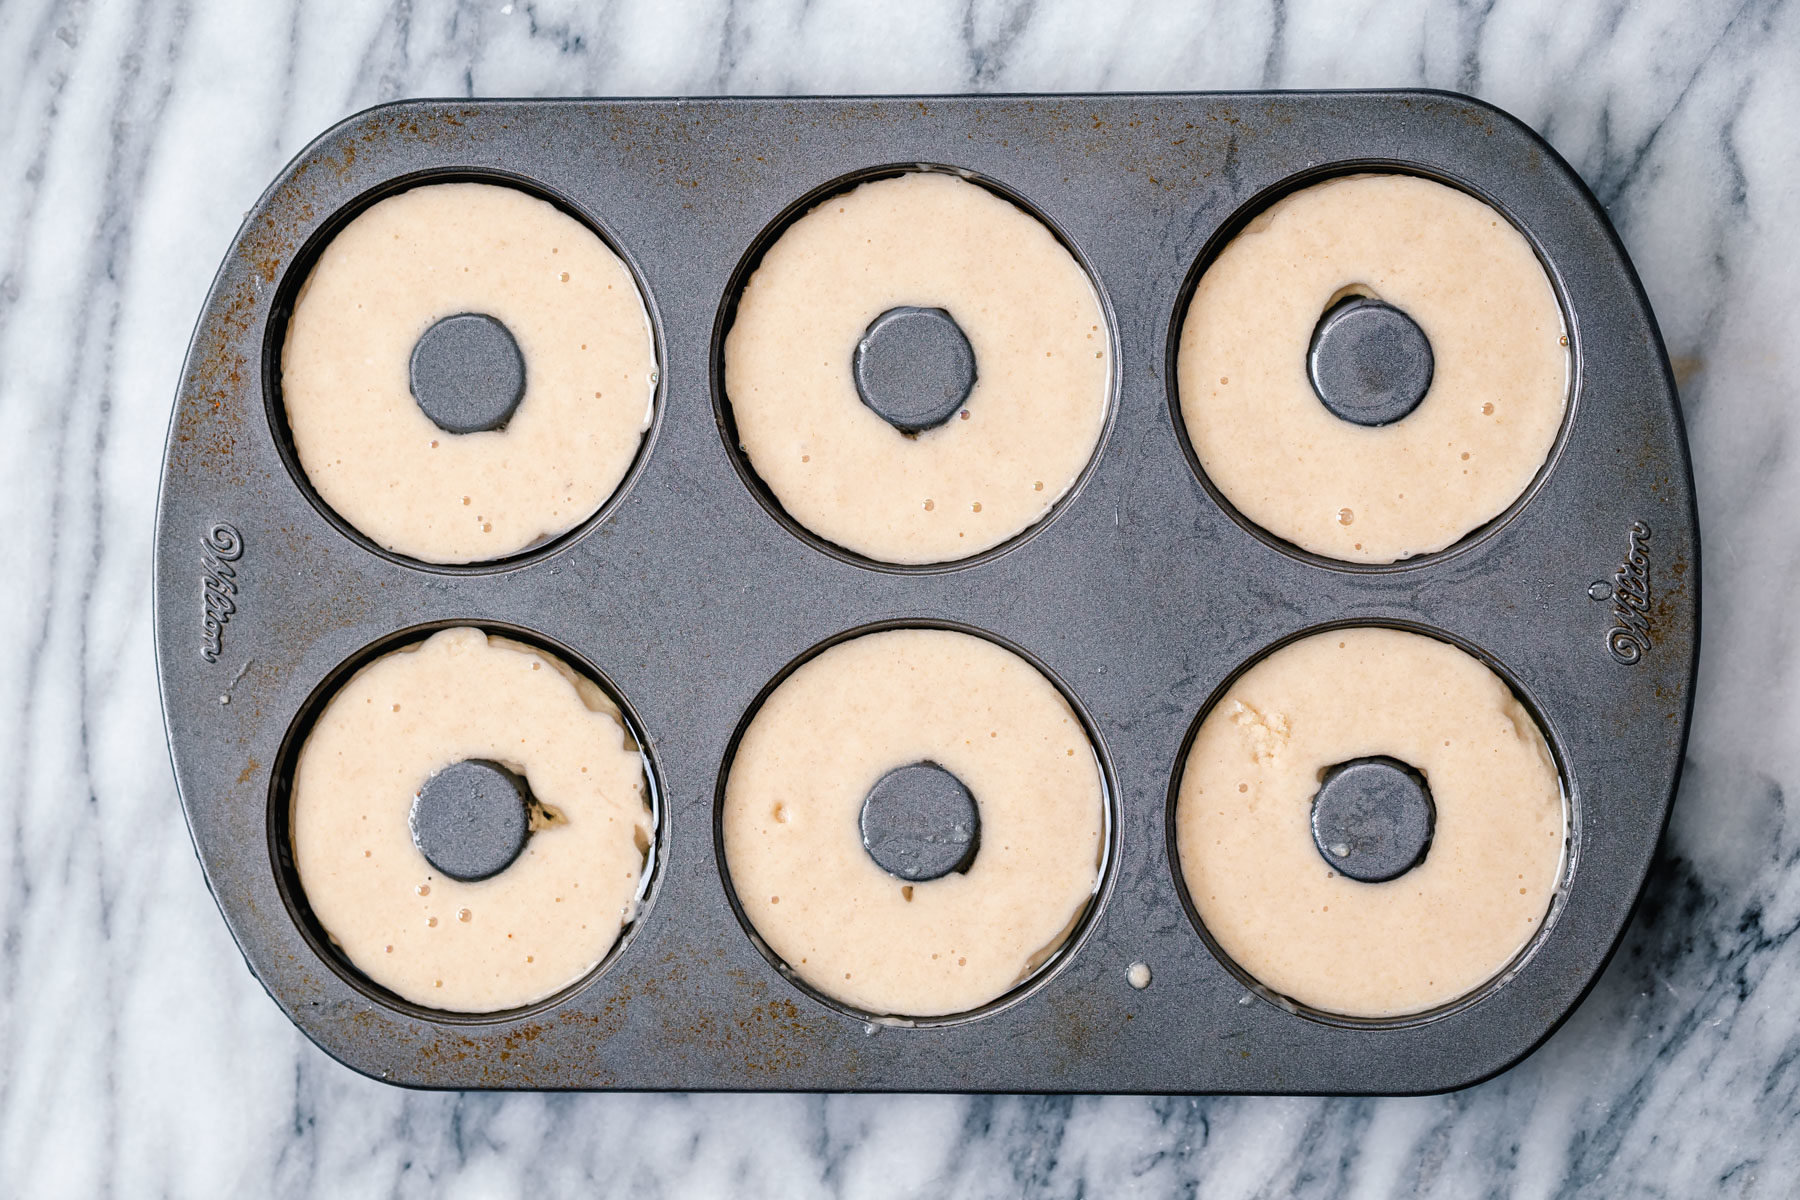 glutenfree almond flour donuts batter being filled into donuts pan